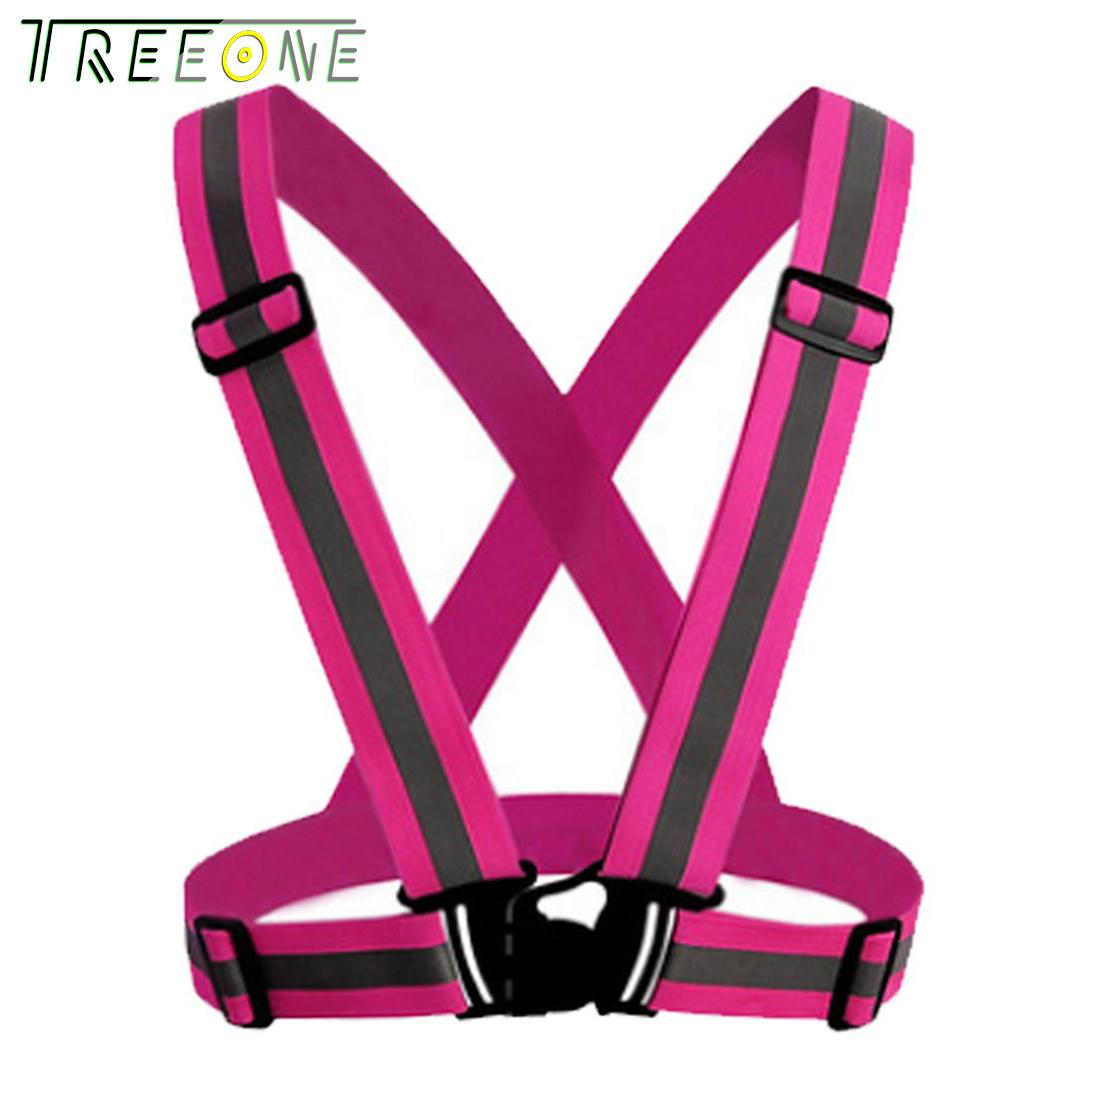 Treeone Safety Vest Reflective, High Visibility Adjustable And Elastic Safety Reflector Vest For Running, Walking, Motorcycle By Treeone.